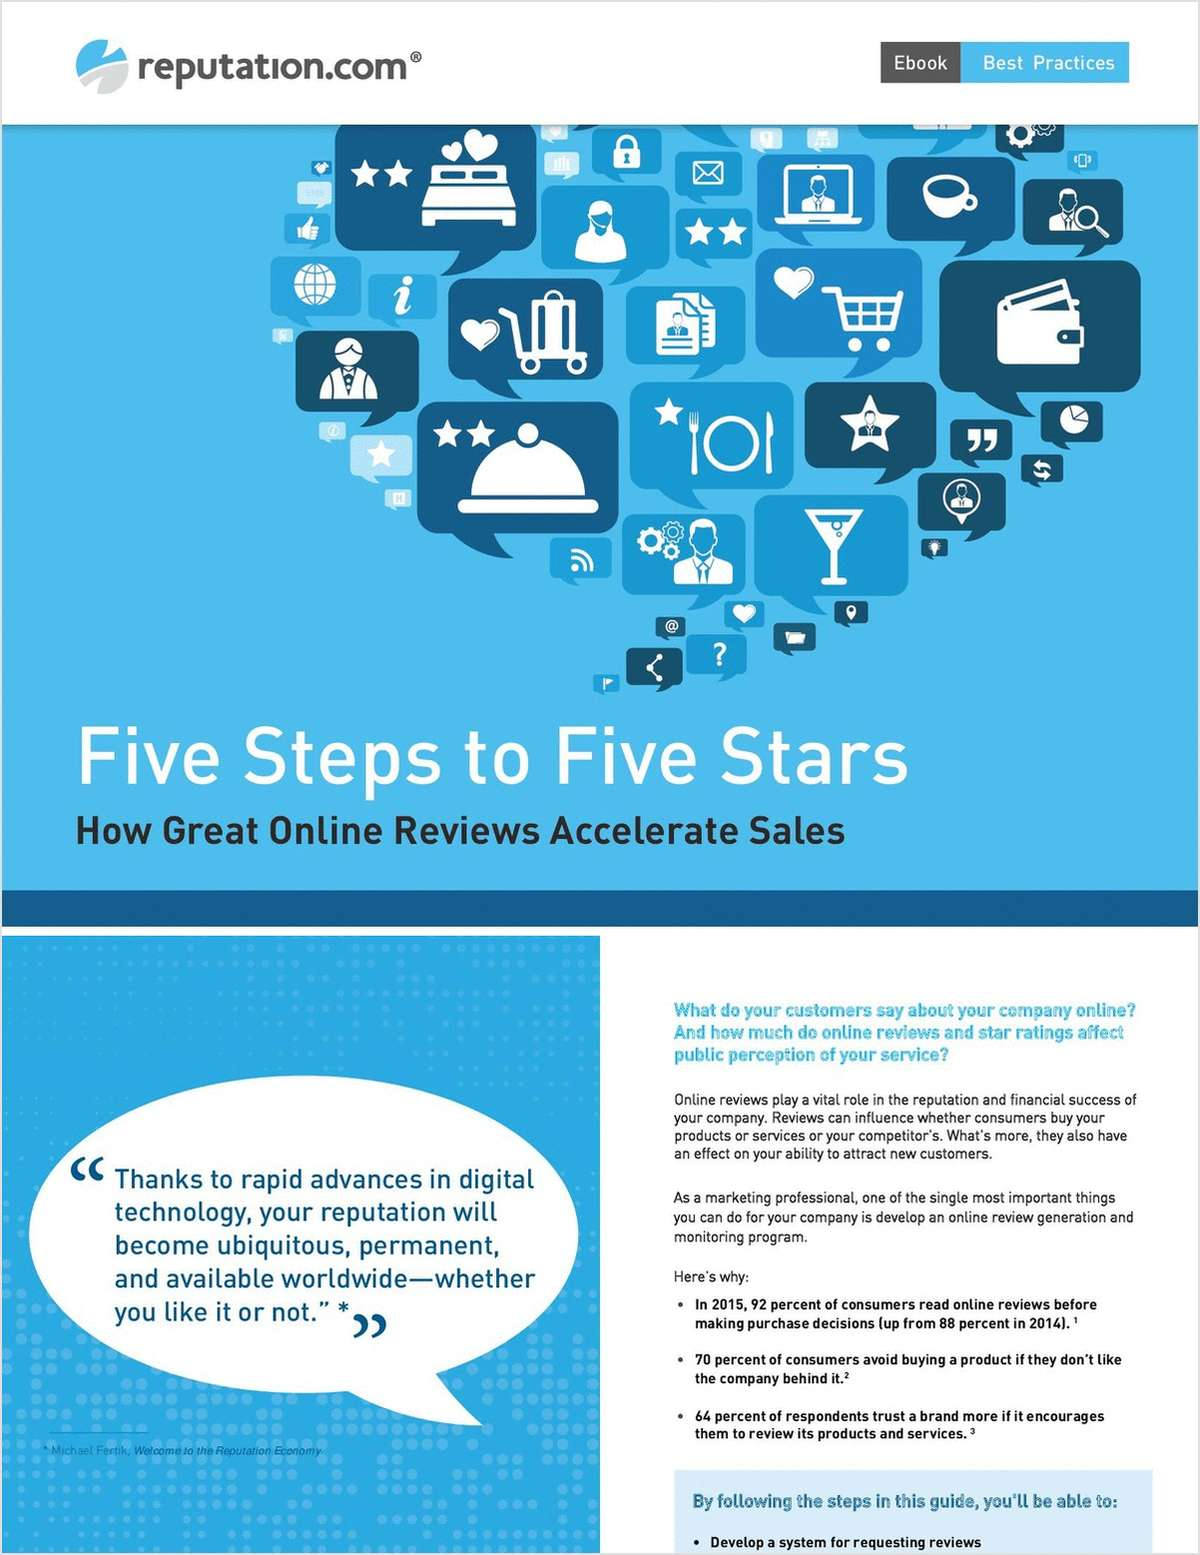 Five Steps to Five Stars: How Great Online Reviews Accelerate Sales